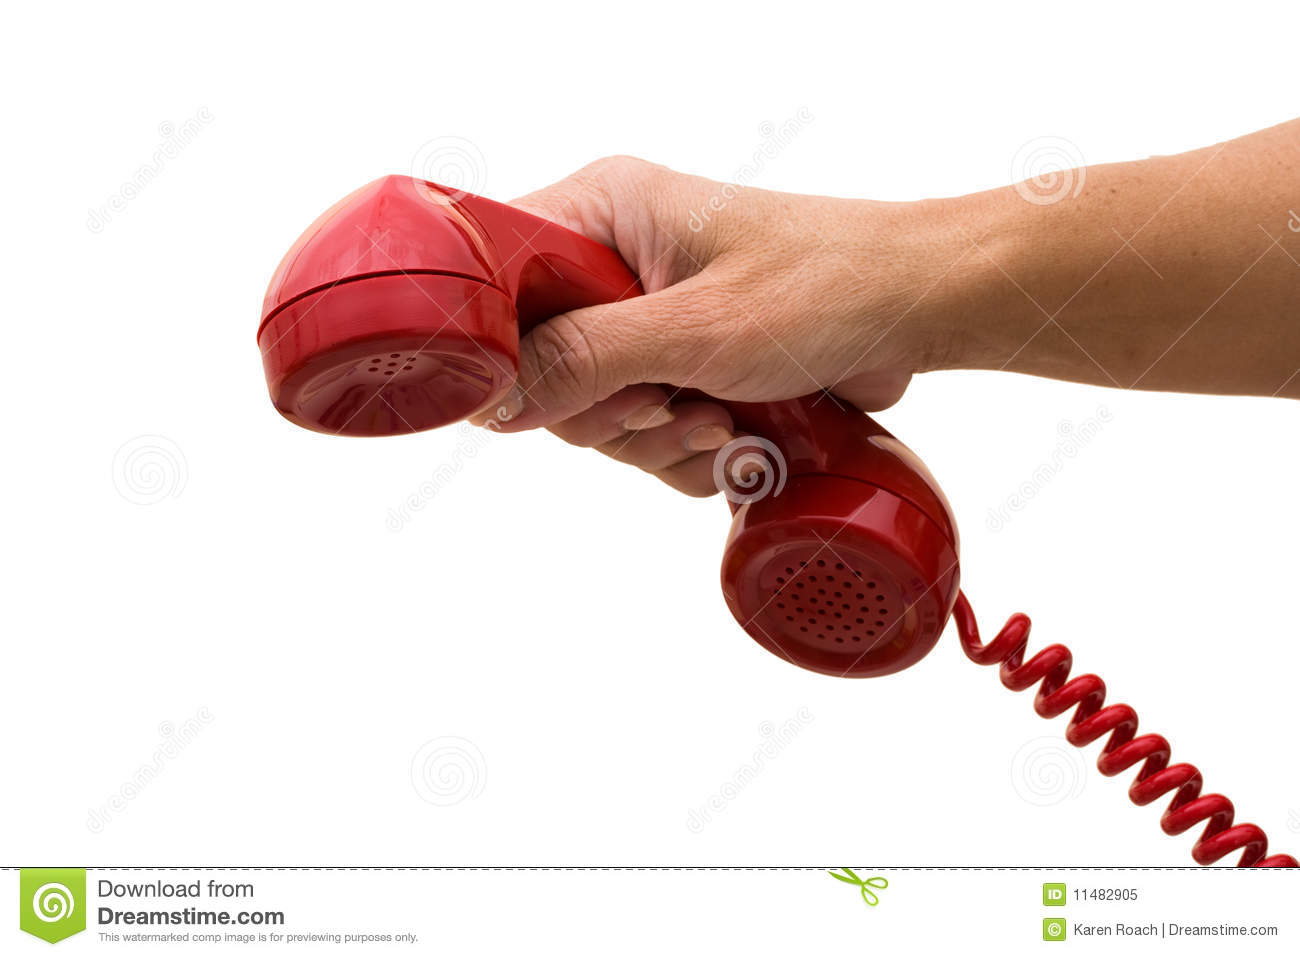 on not answering the telephone by Answer phone calls the following information lets you know how to answer incoming calls, mute the ringer on incoming calls, reject incoming calls, and more.